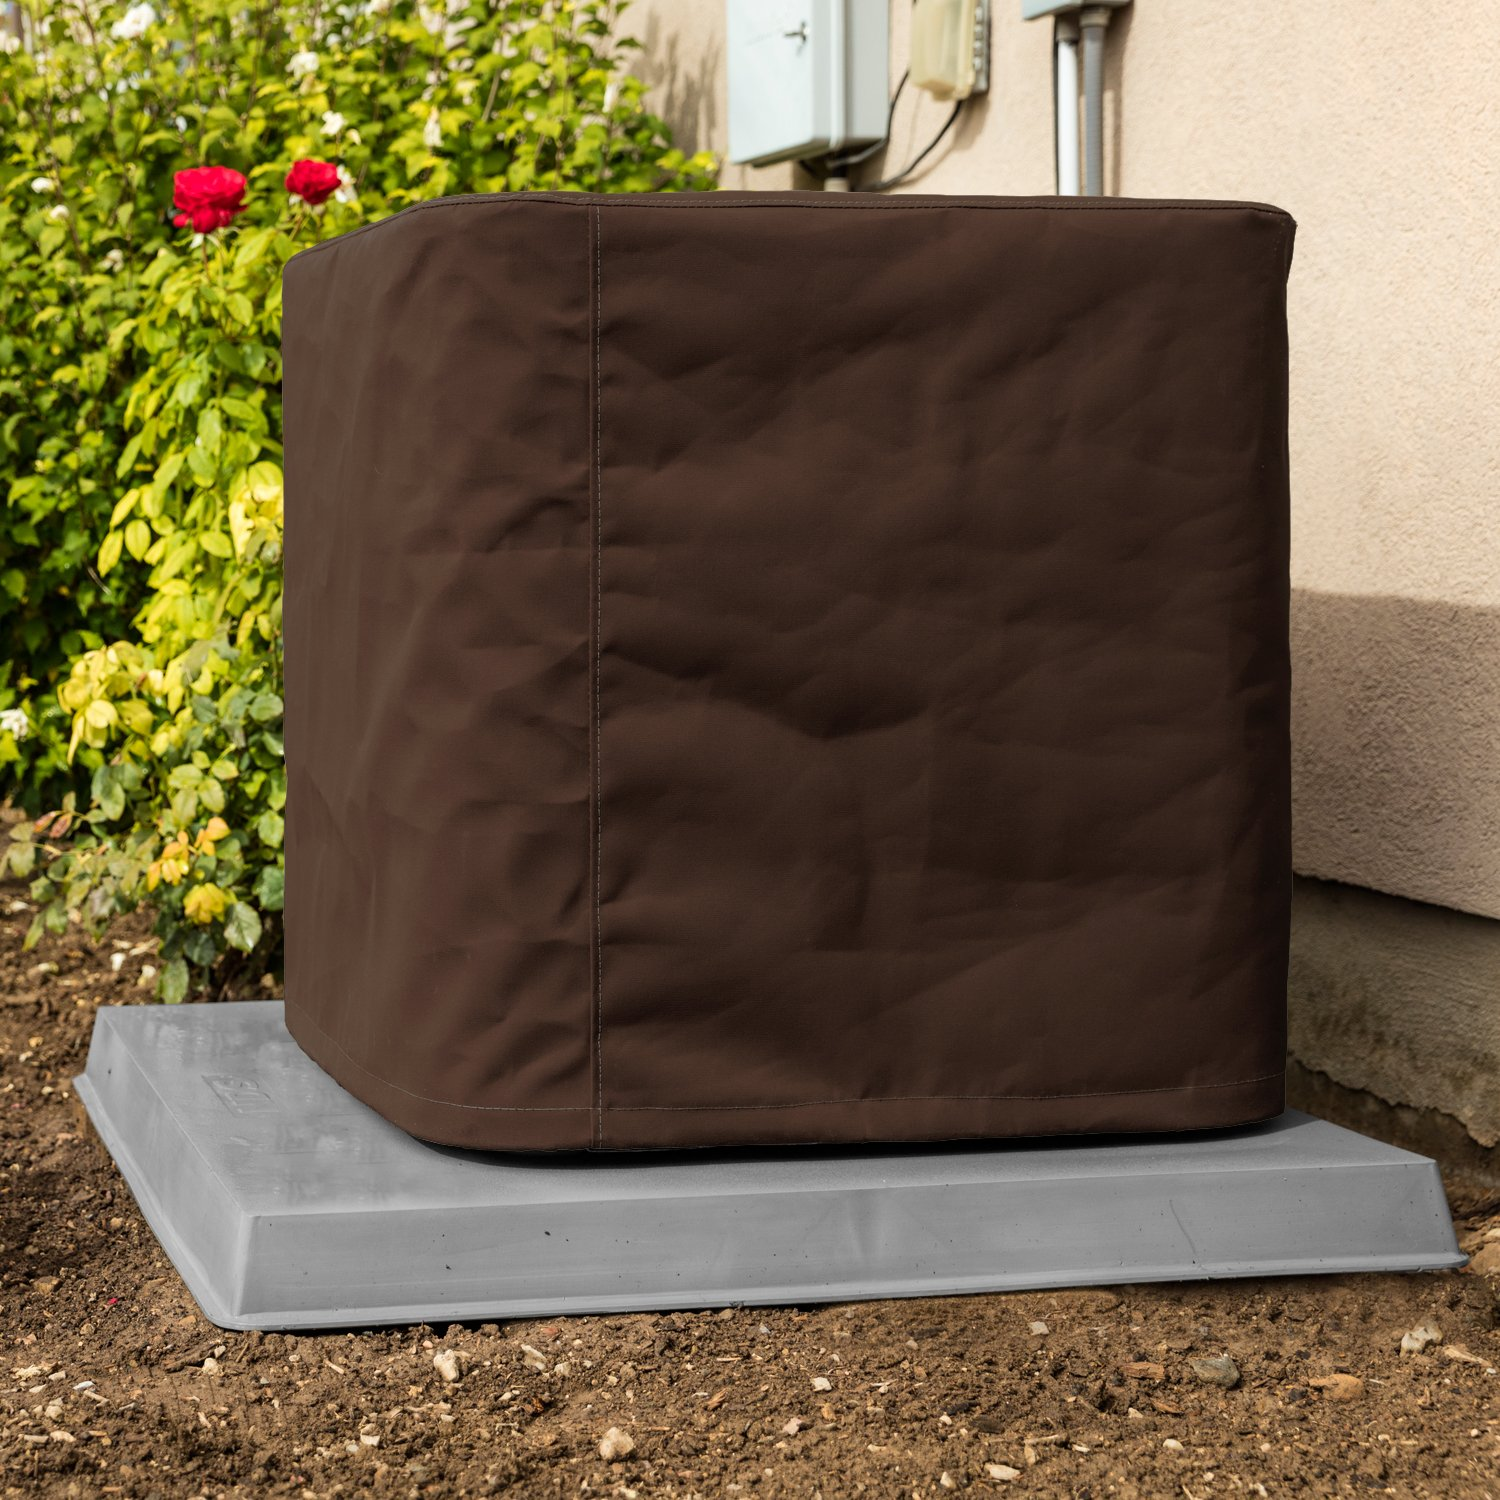 Custom Air Conditioner Cover - Made-to-Order for your exact Make & Model Number - Ultimate Sunbrella Canvas - True Brown - Made in the USA - 10-year Warranty